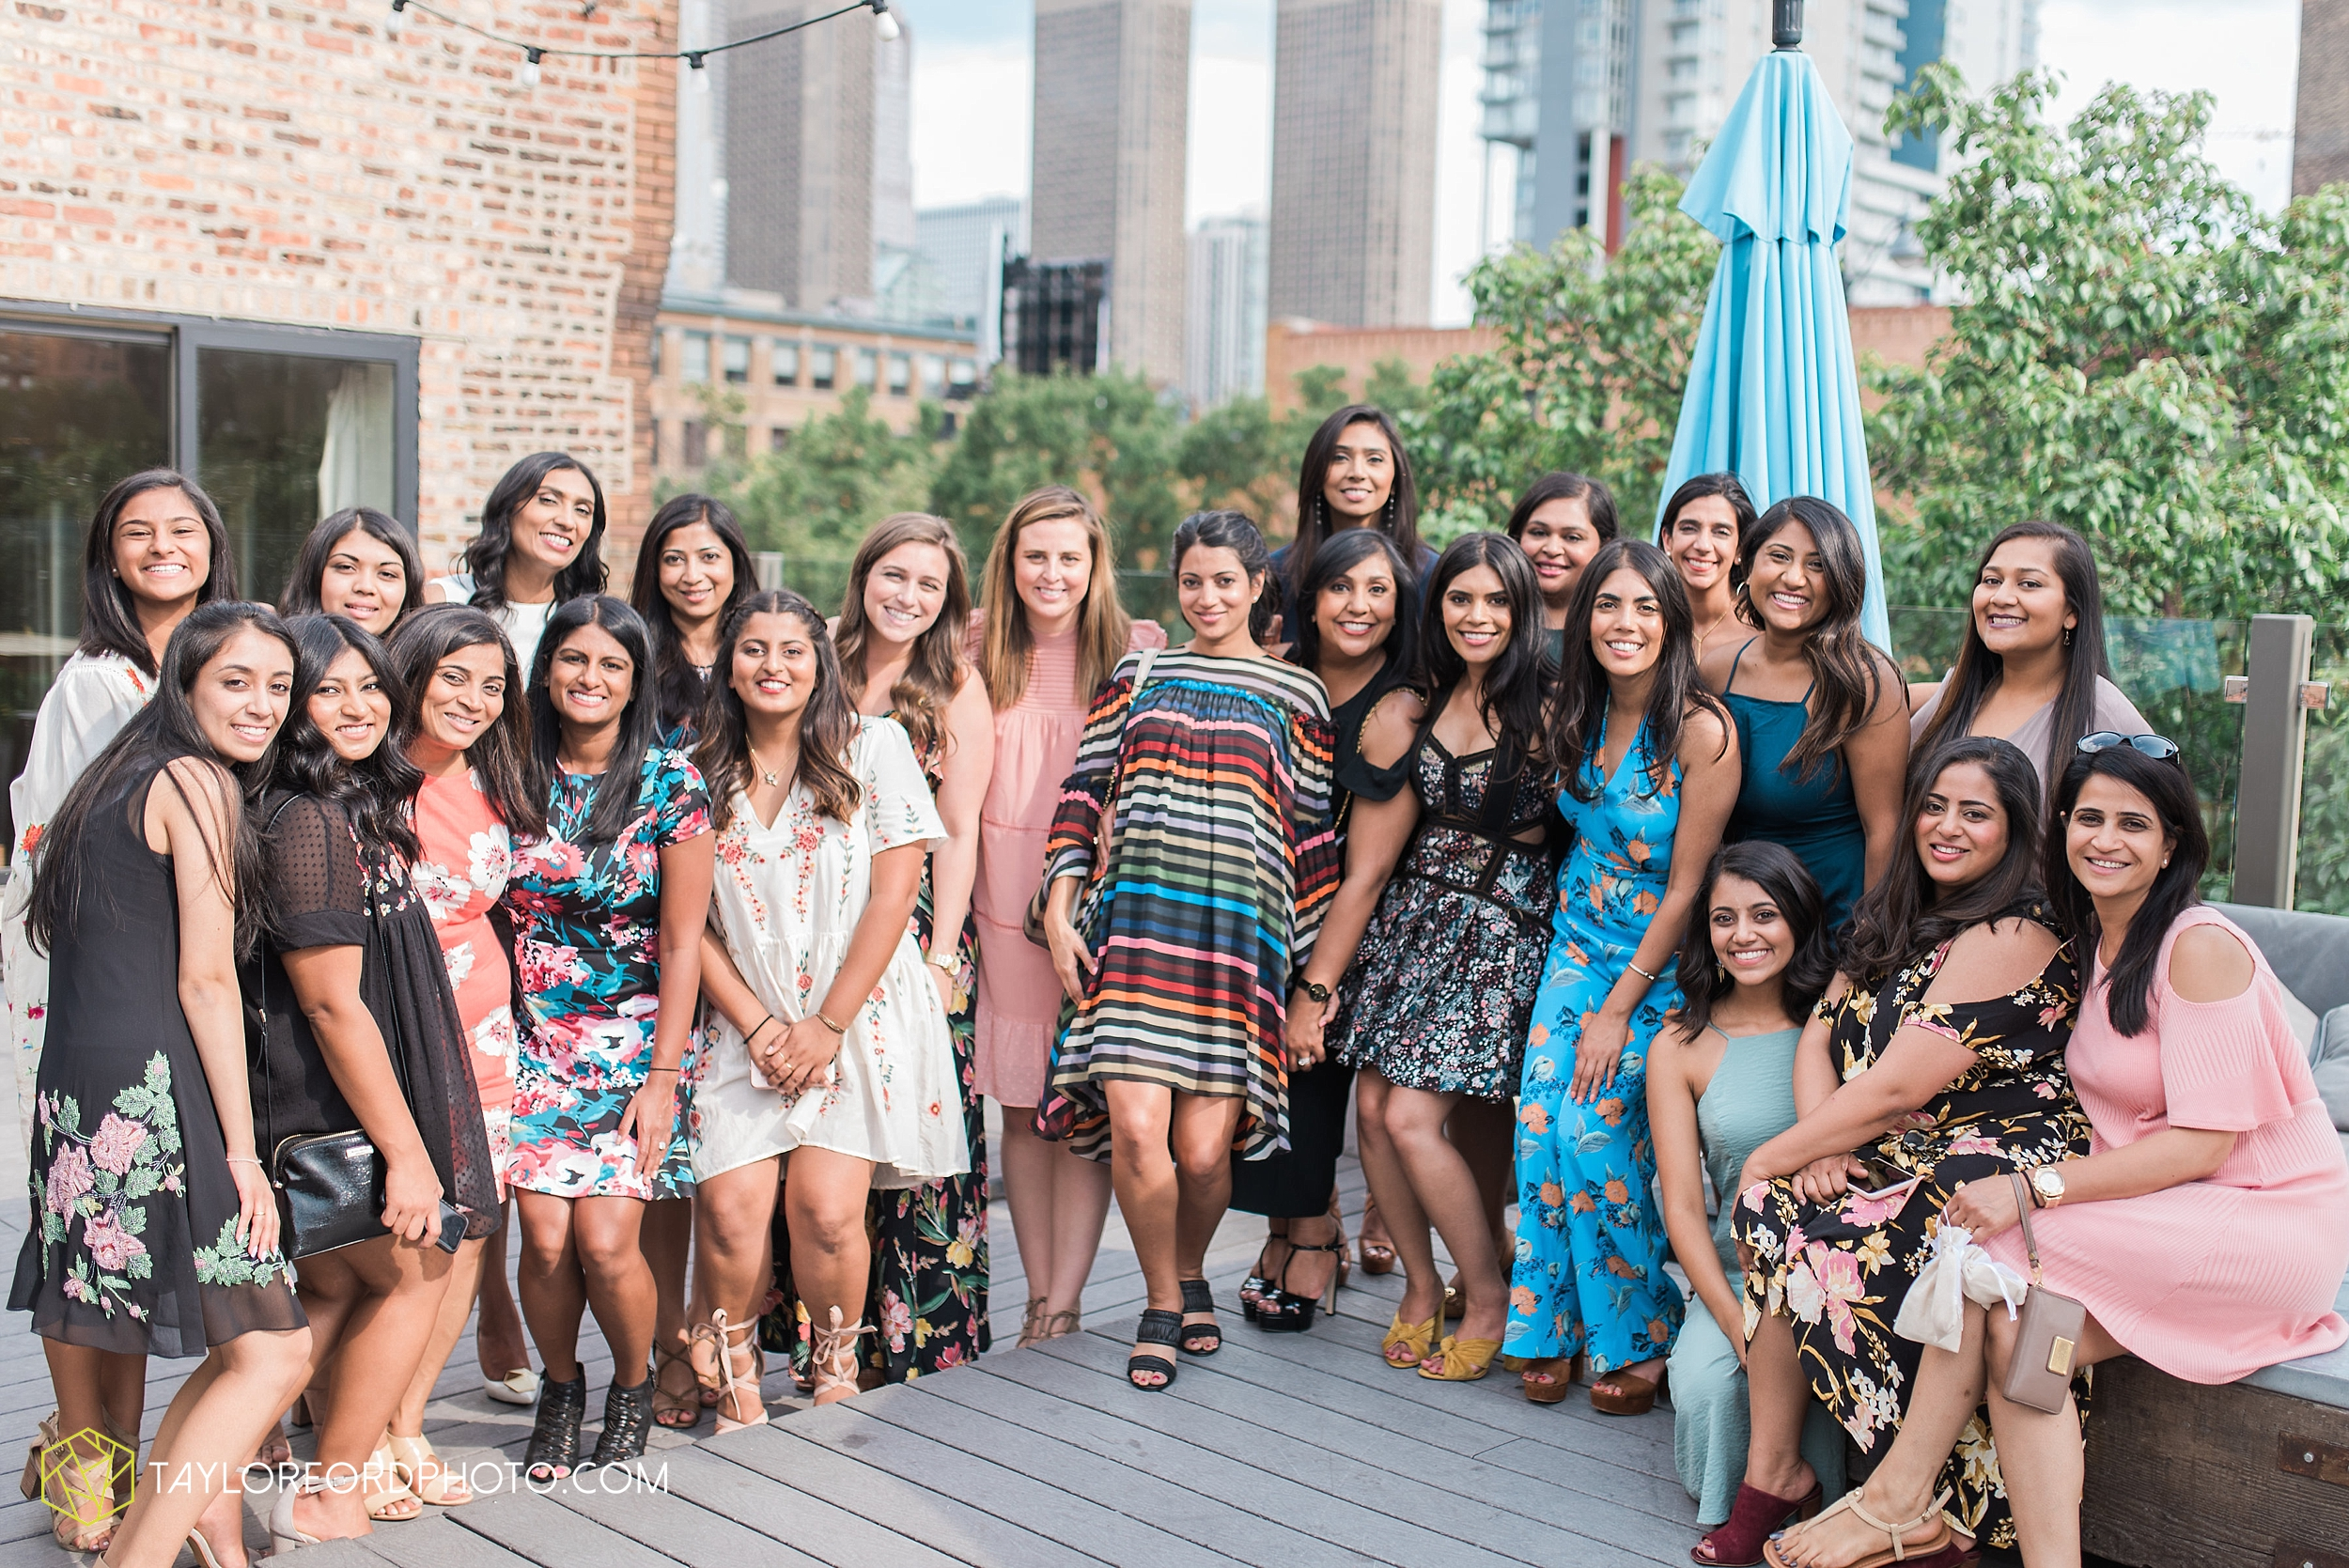 chicago-illinois-bridal-shower-wedding-engagement-photographer-Taylor-Ford-Photography-the-little-goat-diner-rooftop-indian-ceremony_5133.jpg